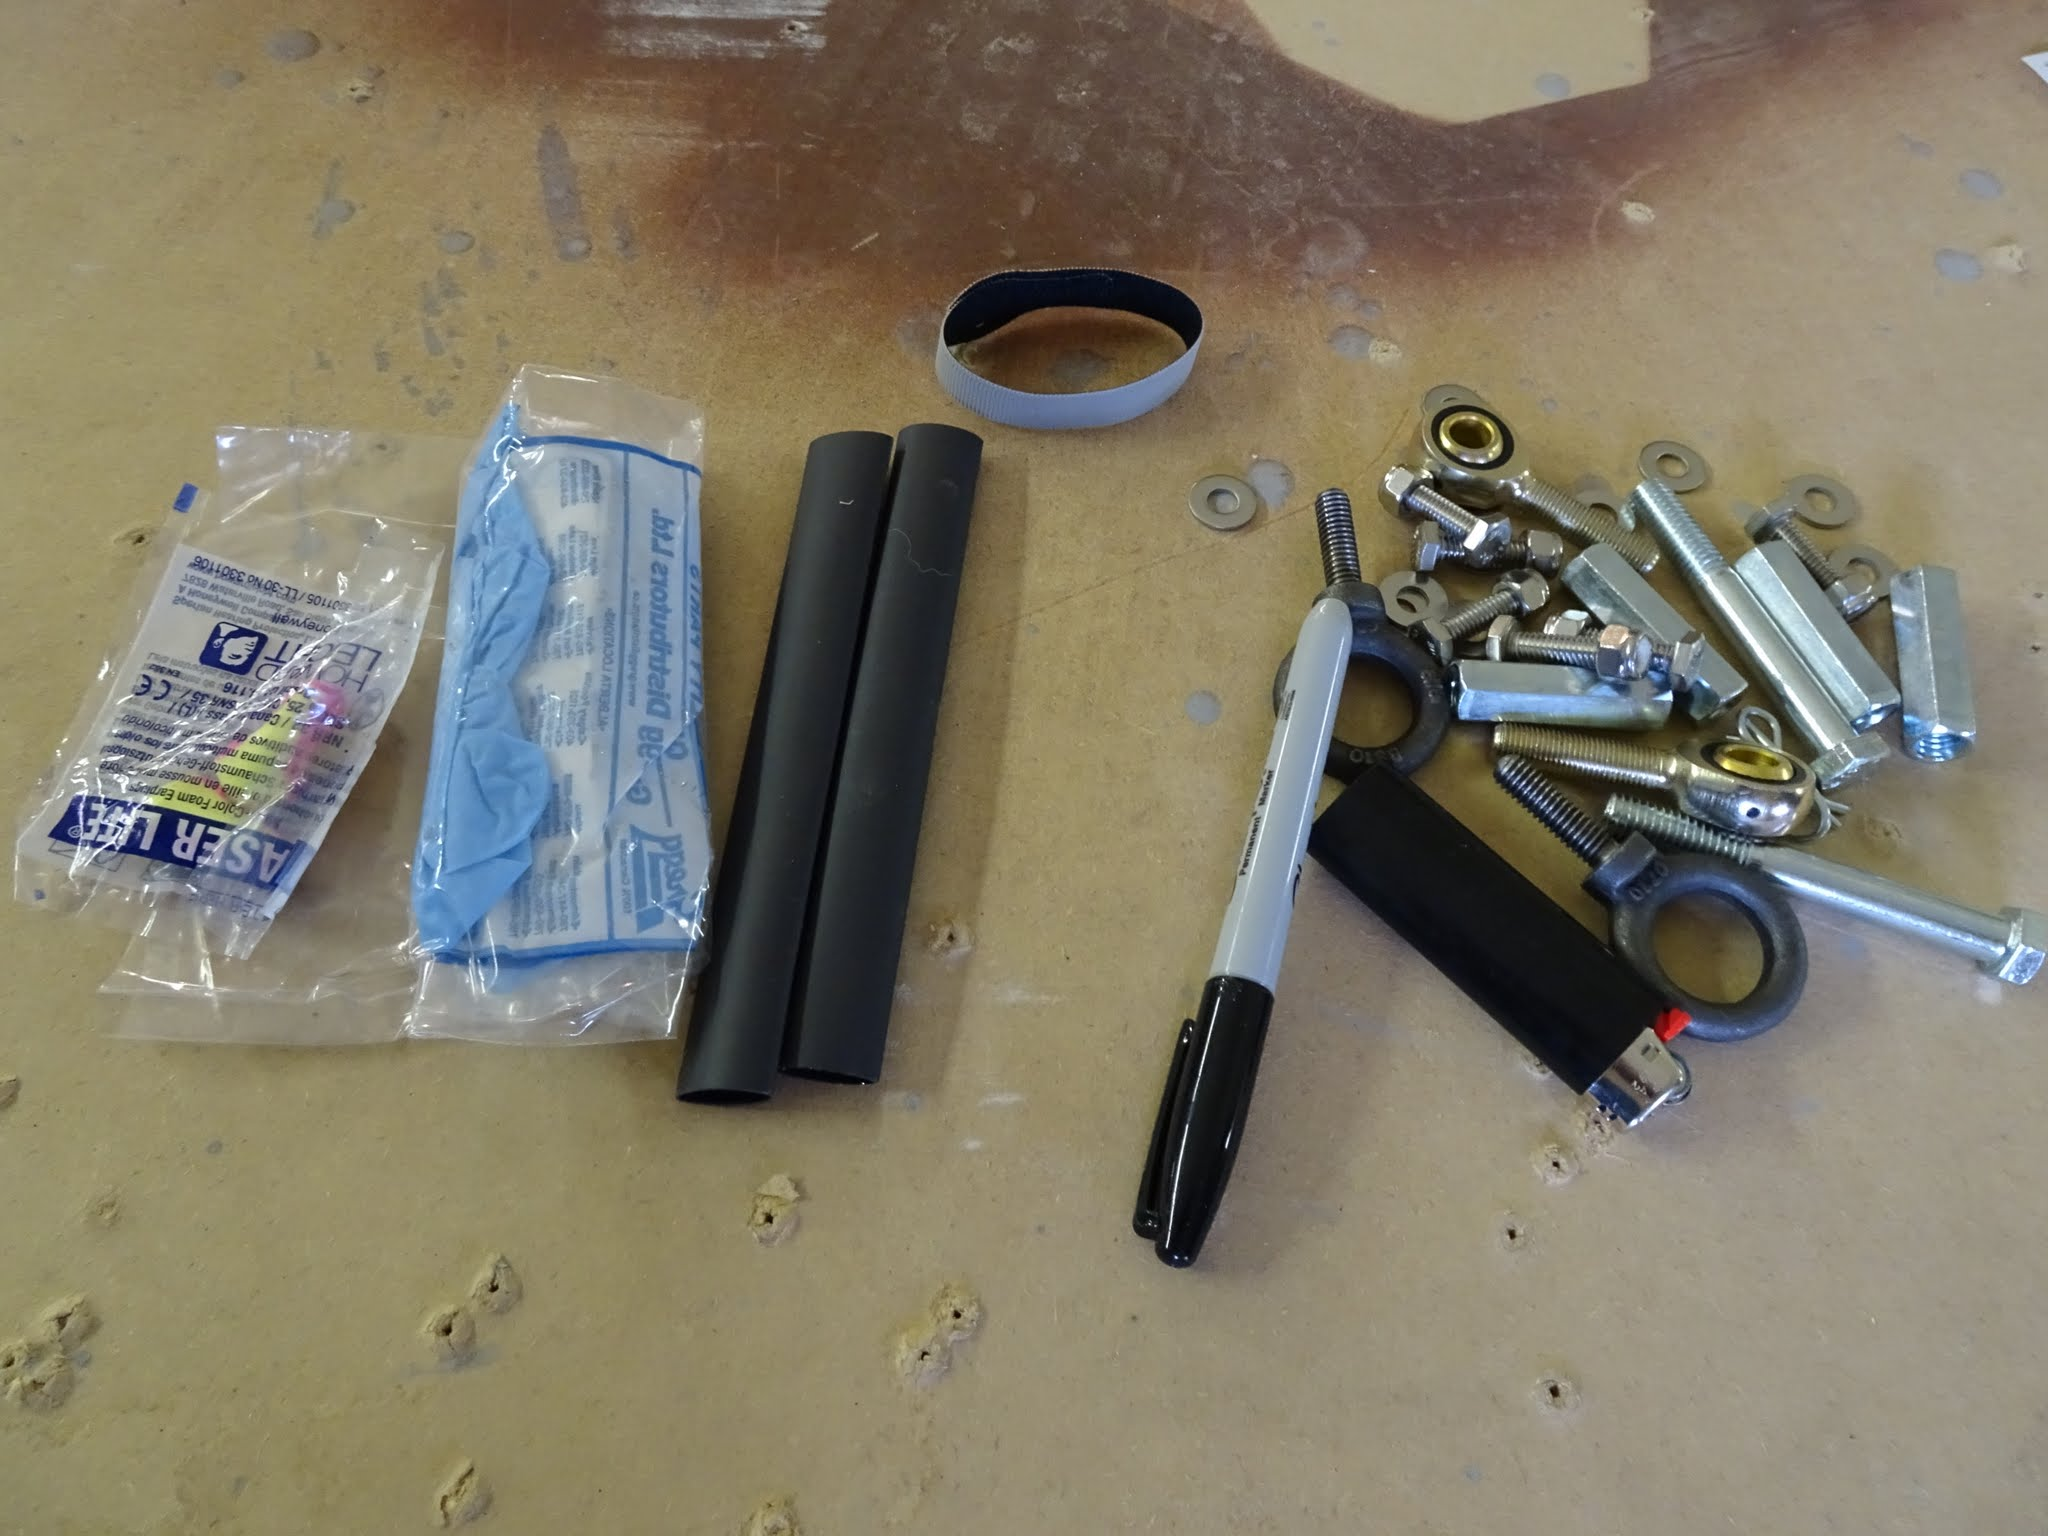 Picture of Materials and Tools: